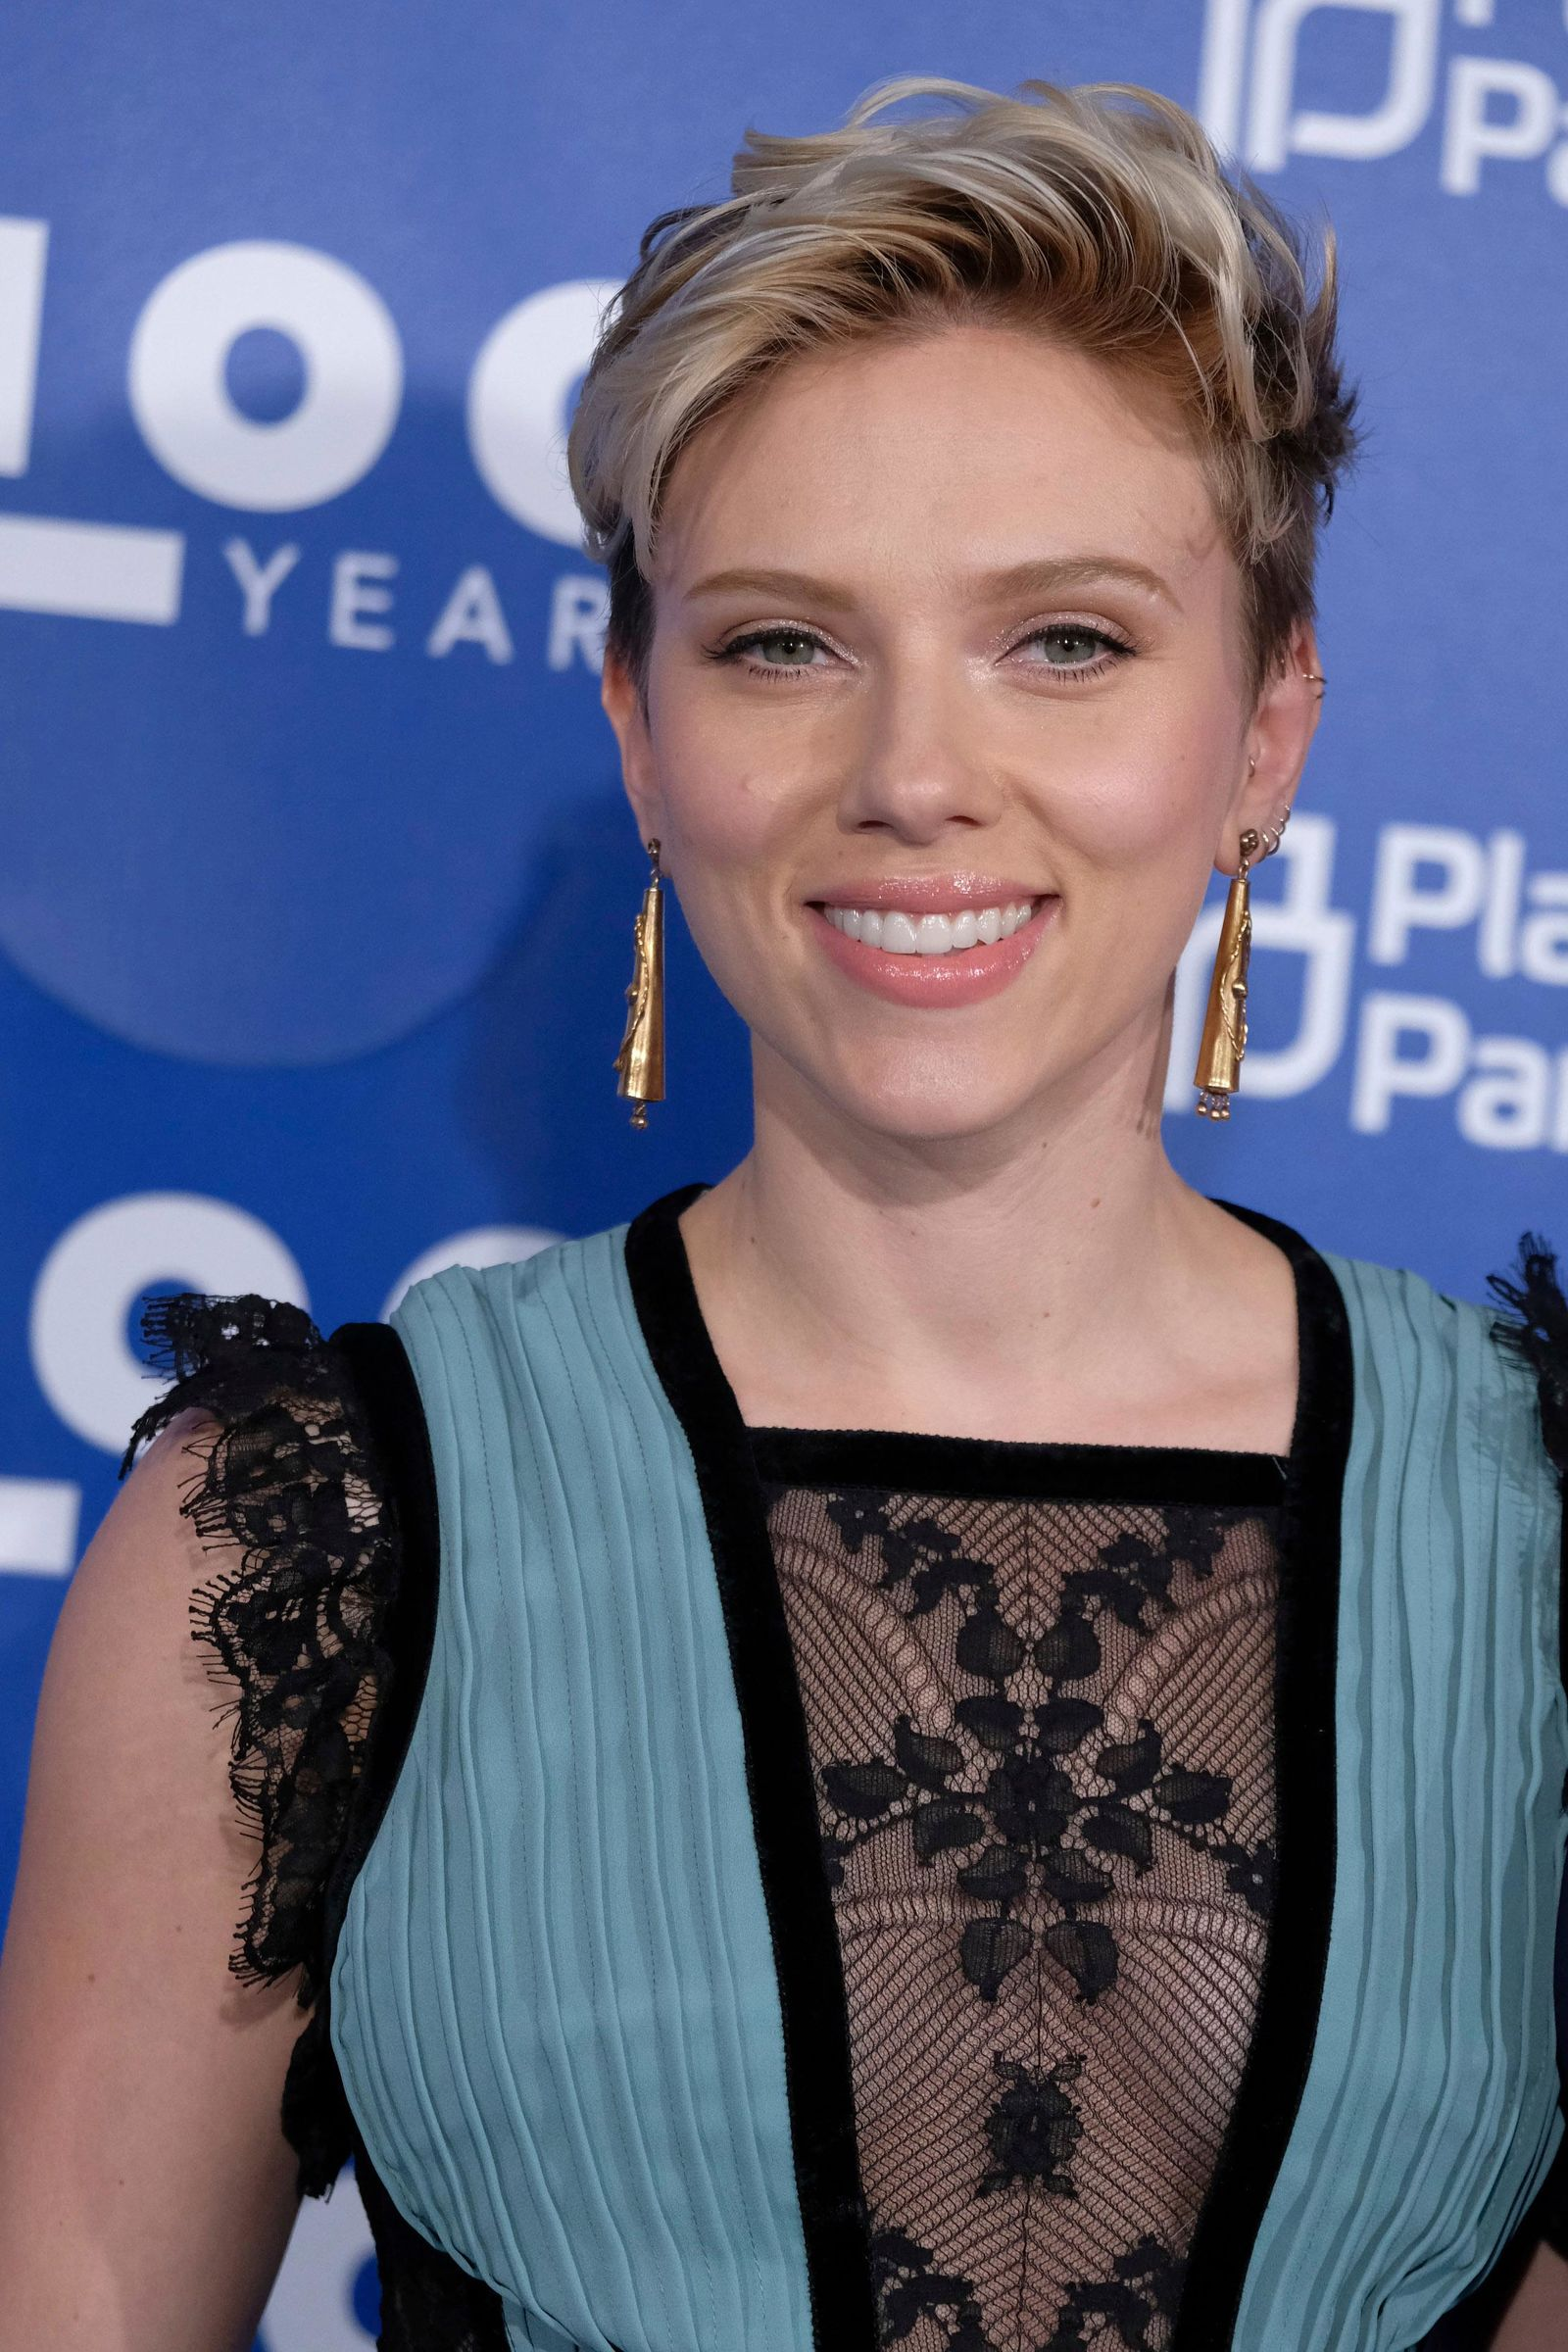 Scarlett Johansson attends the Planned Parenthood 100th Anniversary Gala on Tuesday, May 2, 2017 in New York. (Photo by Charles Sykes/Invision/AP)